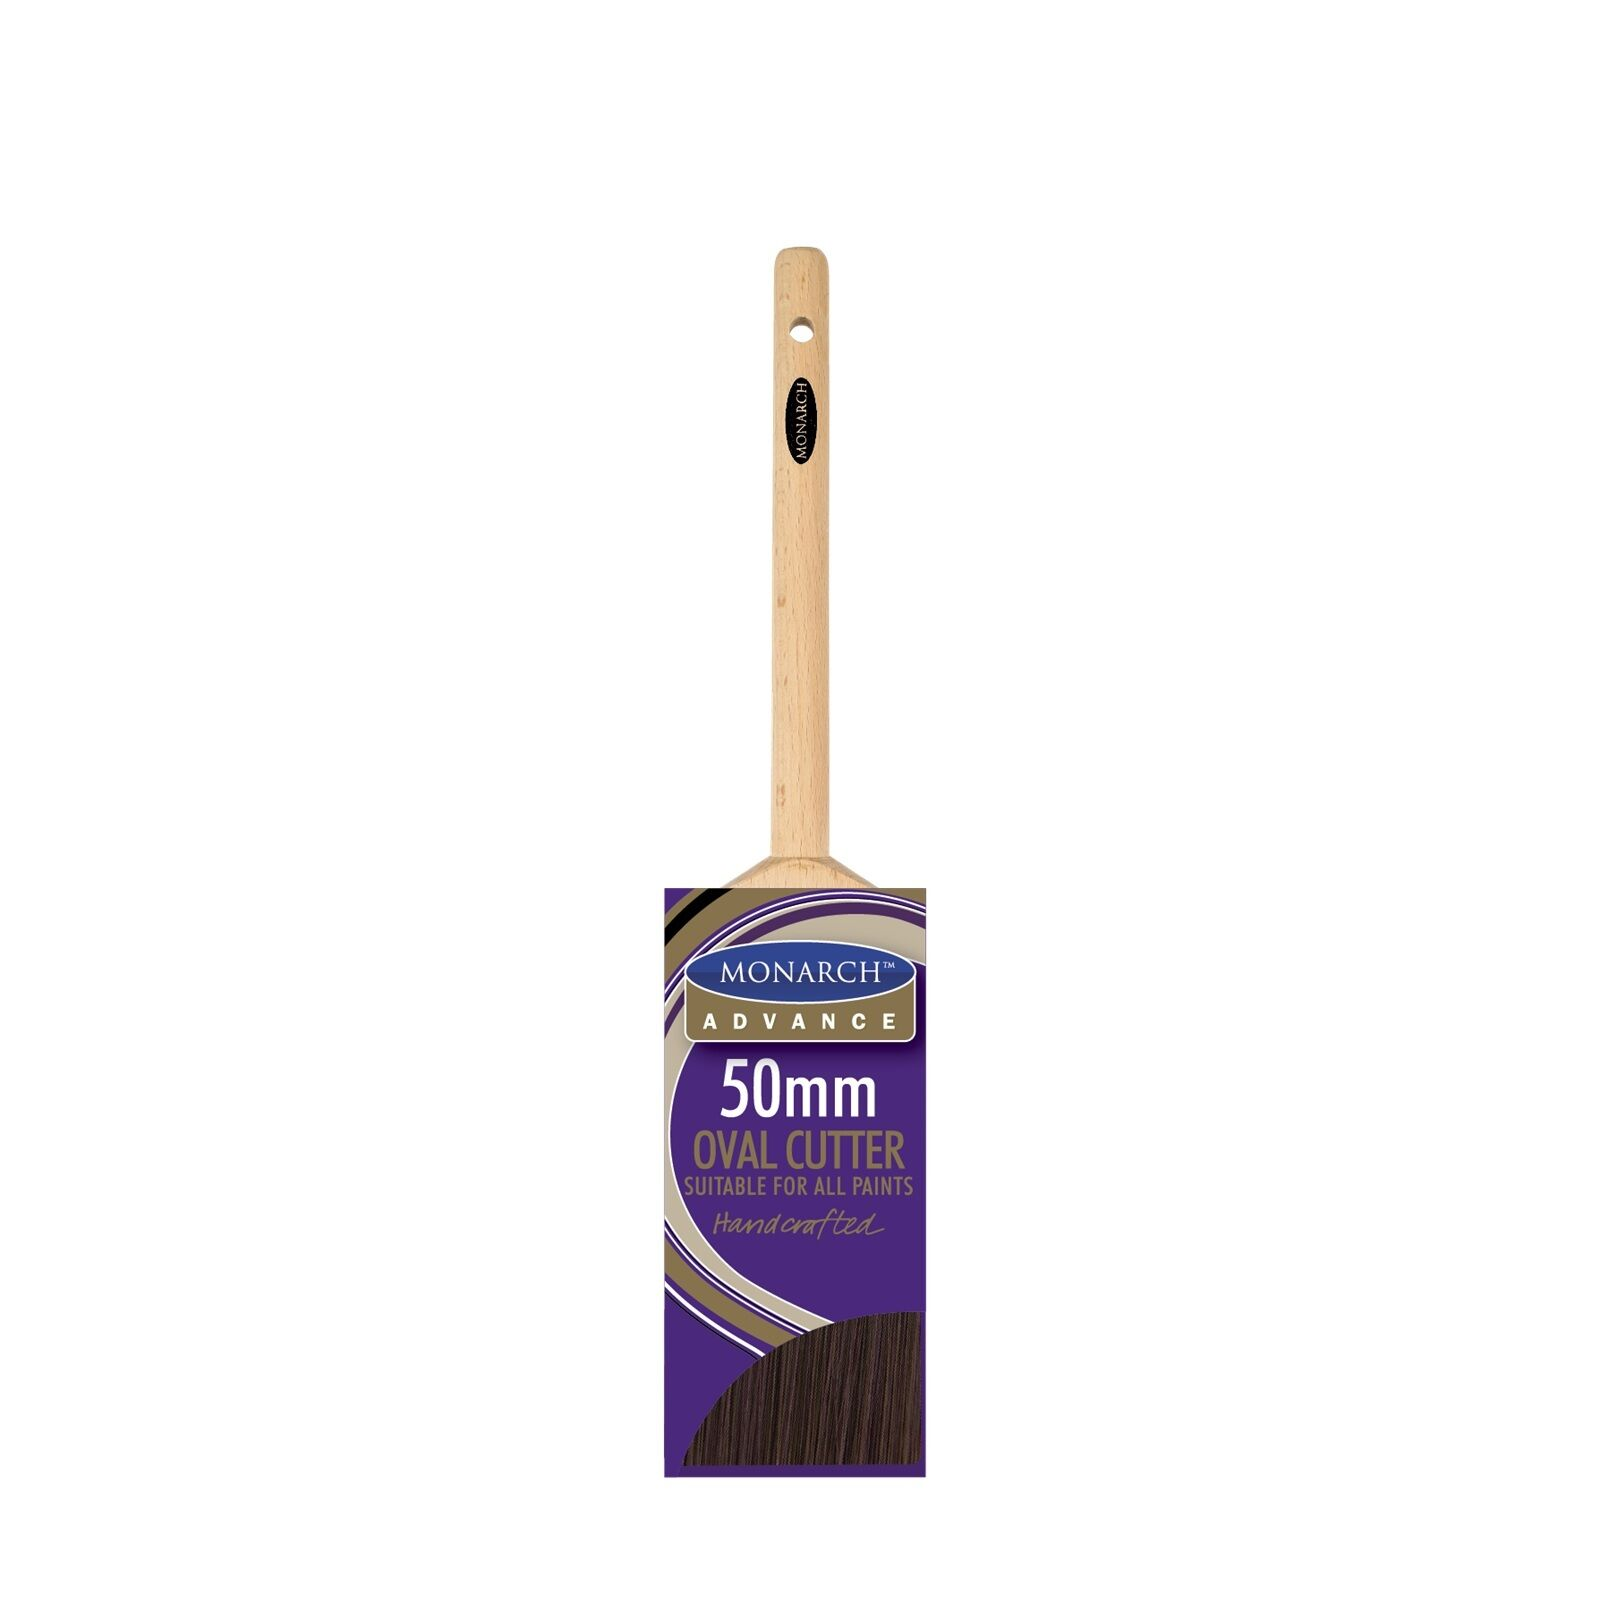 Monarch ADVANCE OVAL CUTTER SYNTHETIC PAINT BRUSH Aust Brand - 50, 63 Or 75mm